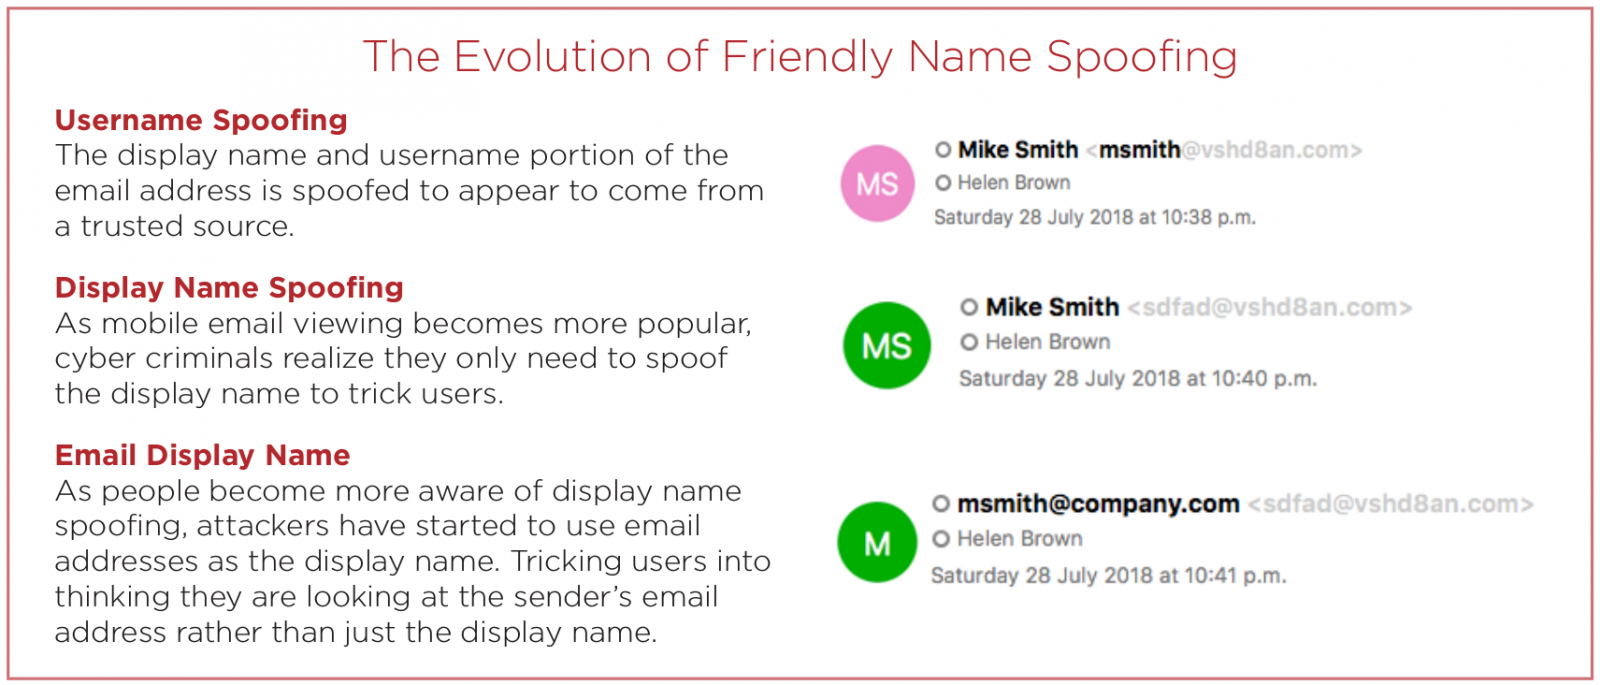 friendly-name-spoofing_evolution